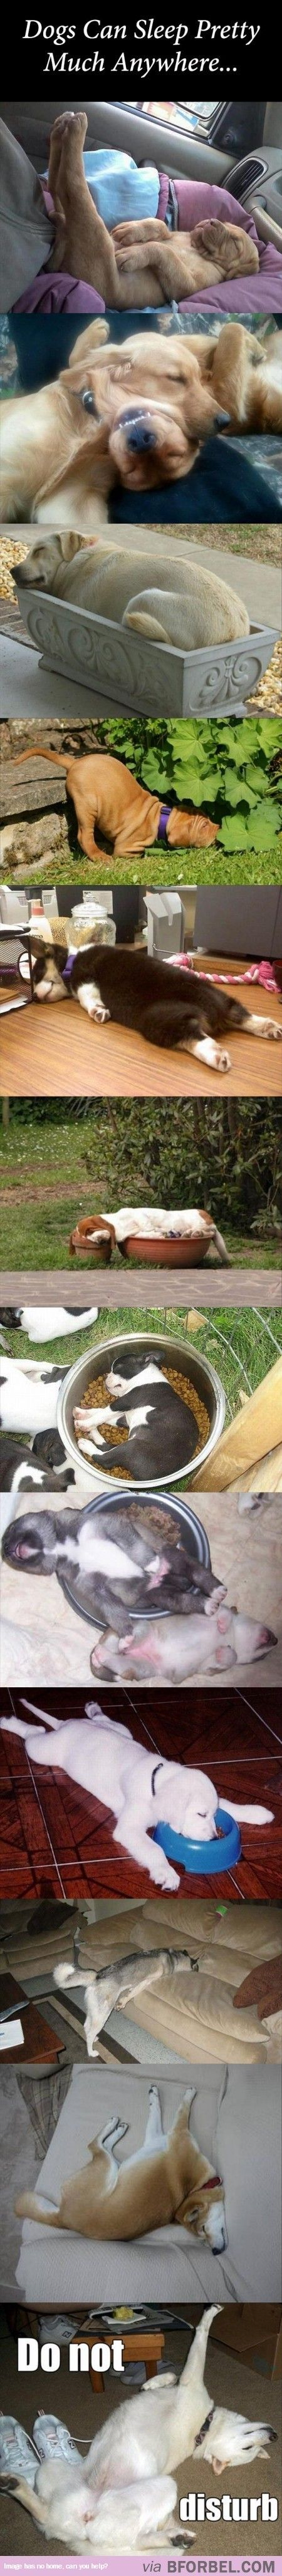 Dogs Can Sleep Anywhere, In Any Position.. ♥g♥